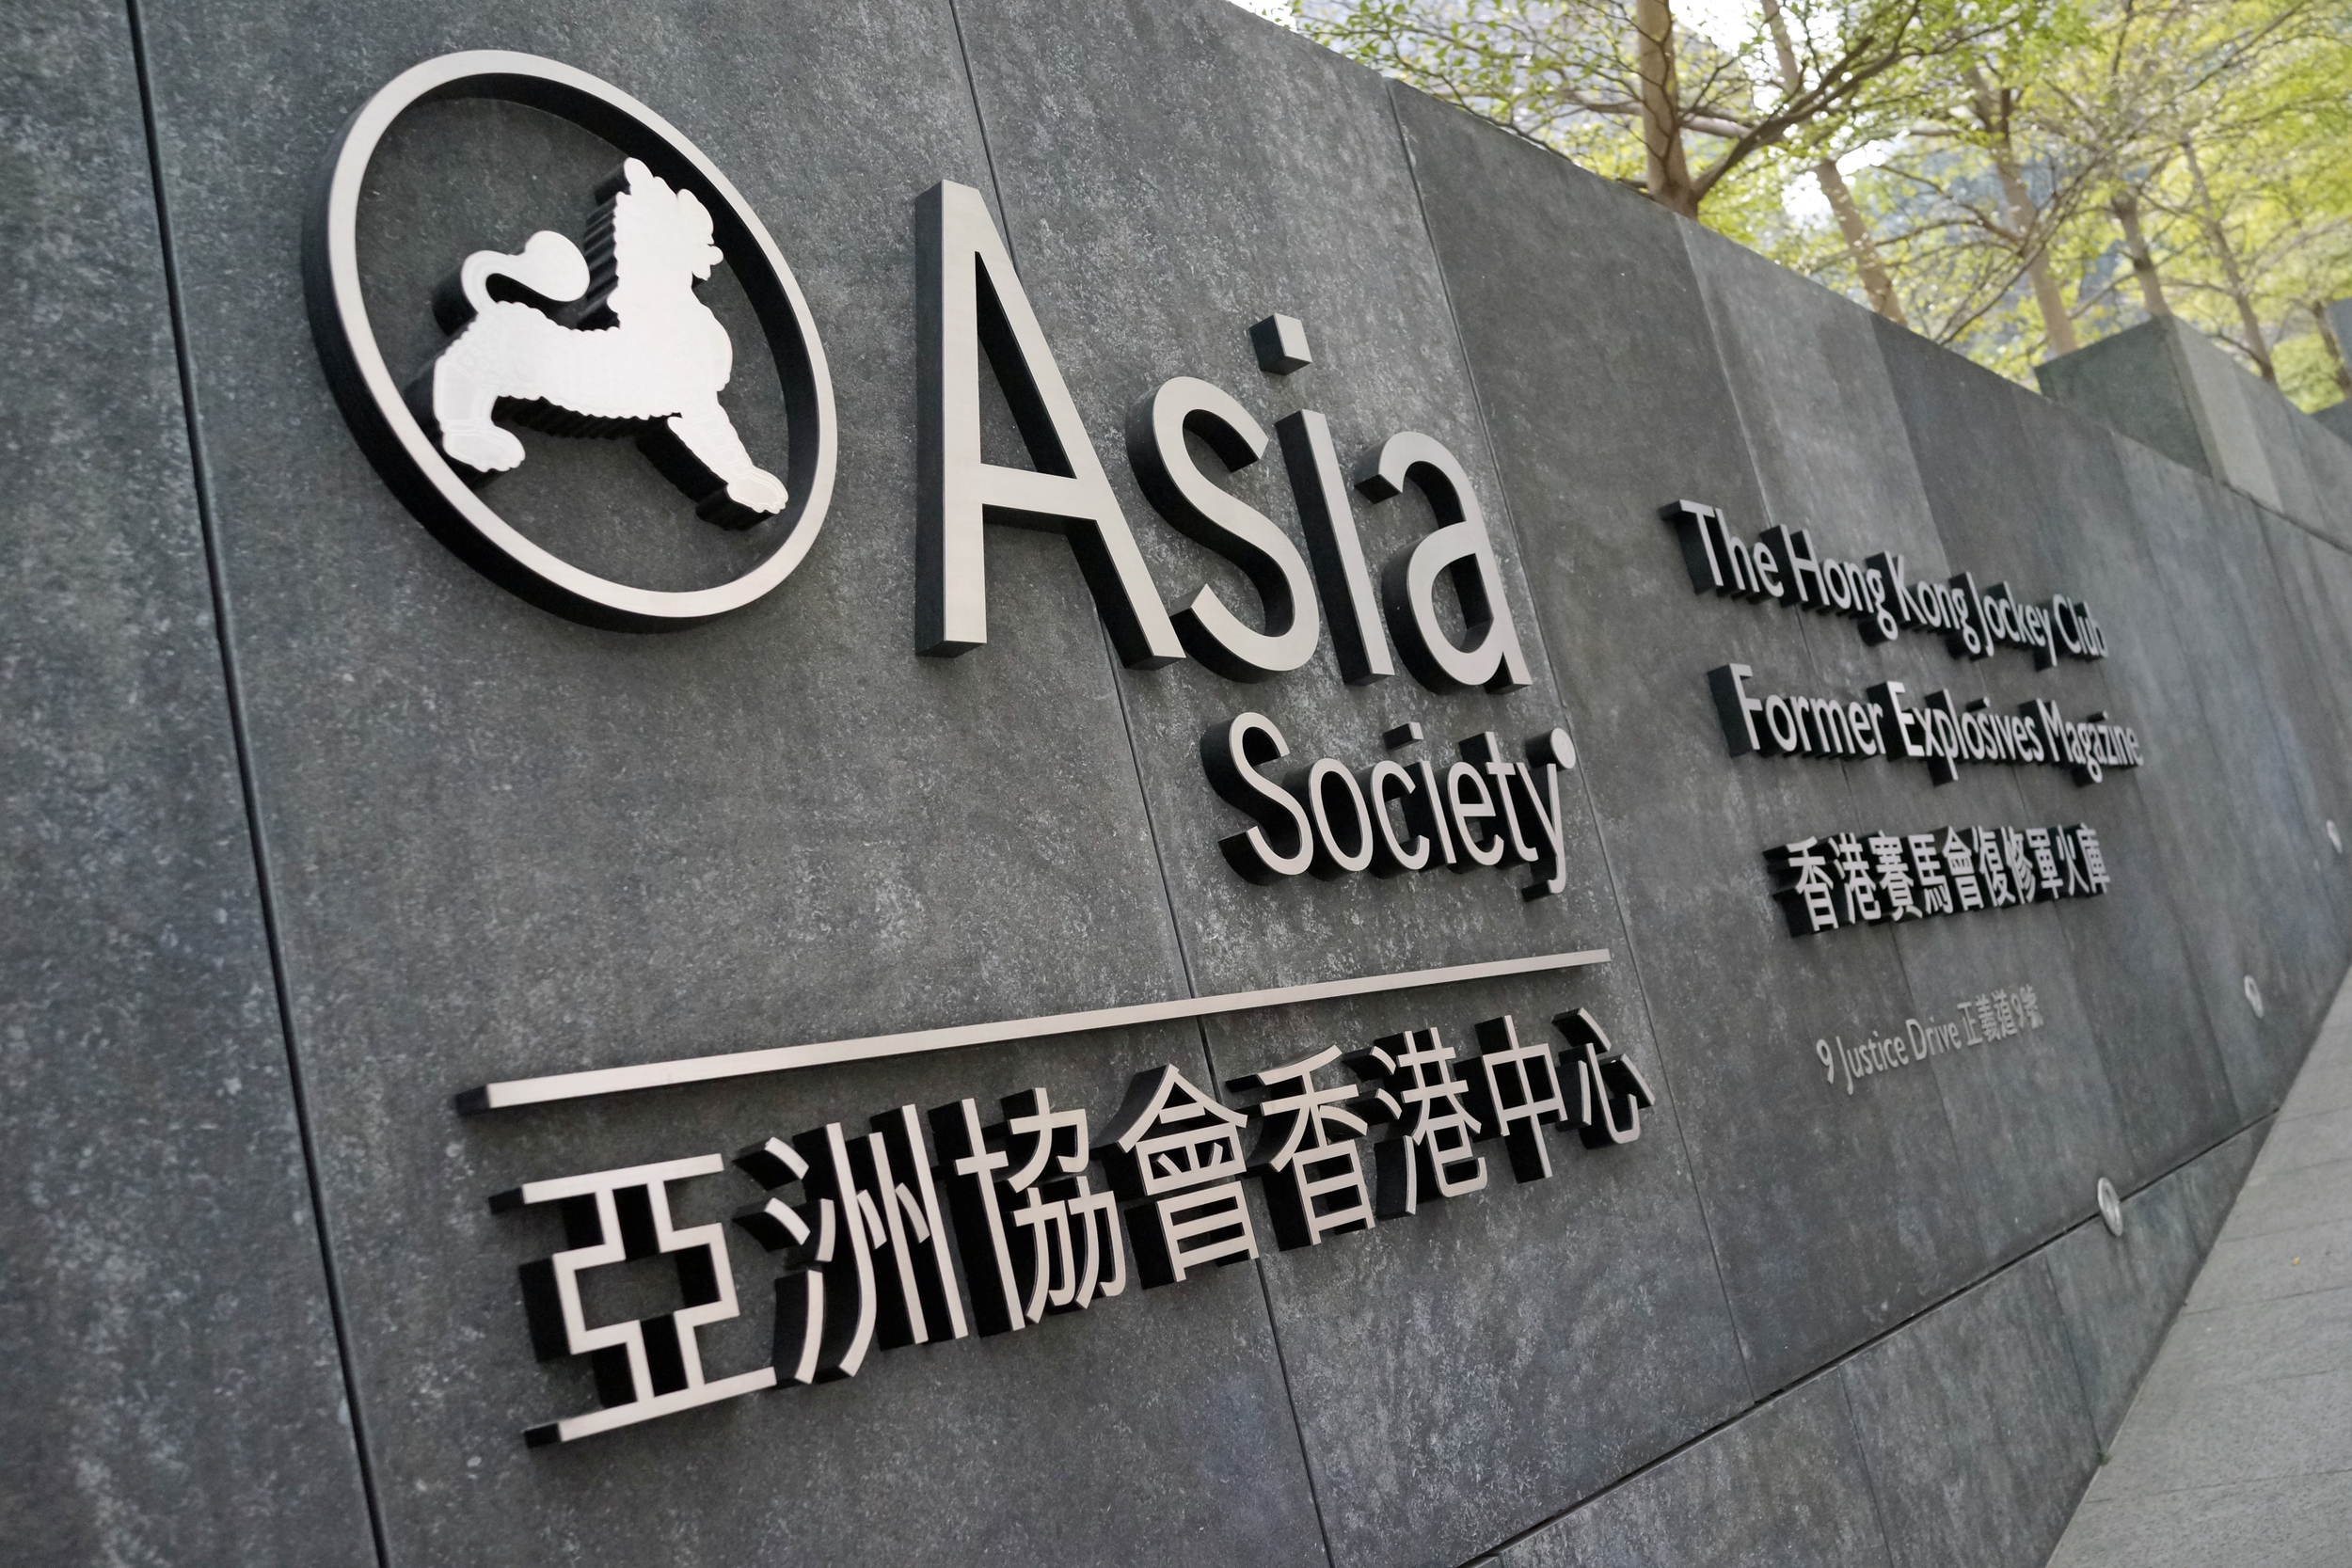 You can spend a very pleasant hour at the Asia Society at Admiralty on Hong Kong Island (it is opposite the British Consulate) and it is 5 minutes walk from Hong Kong Park.